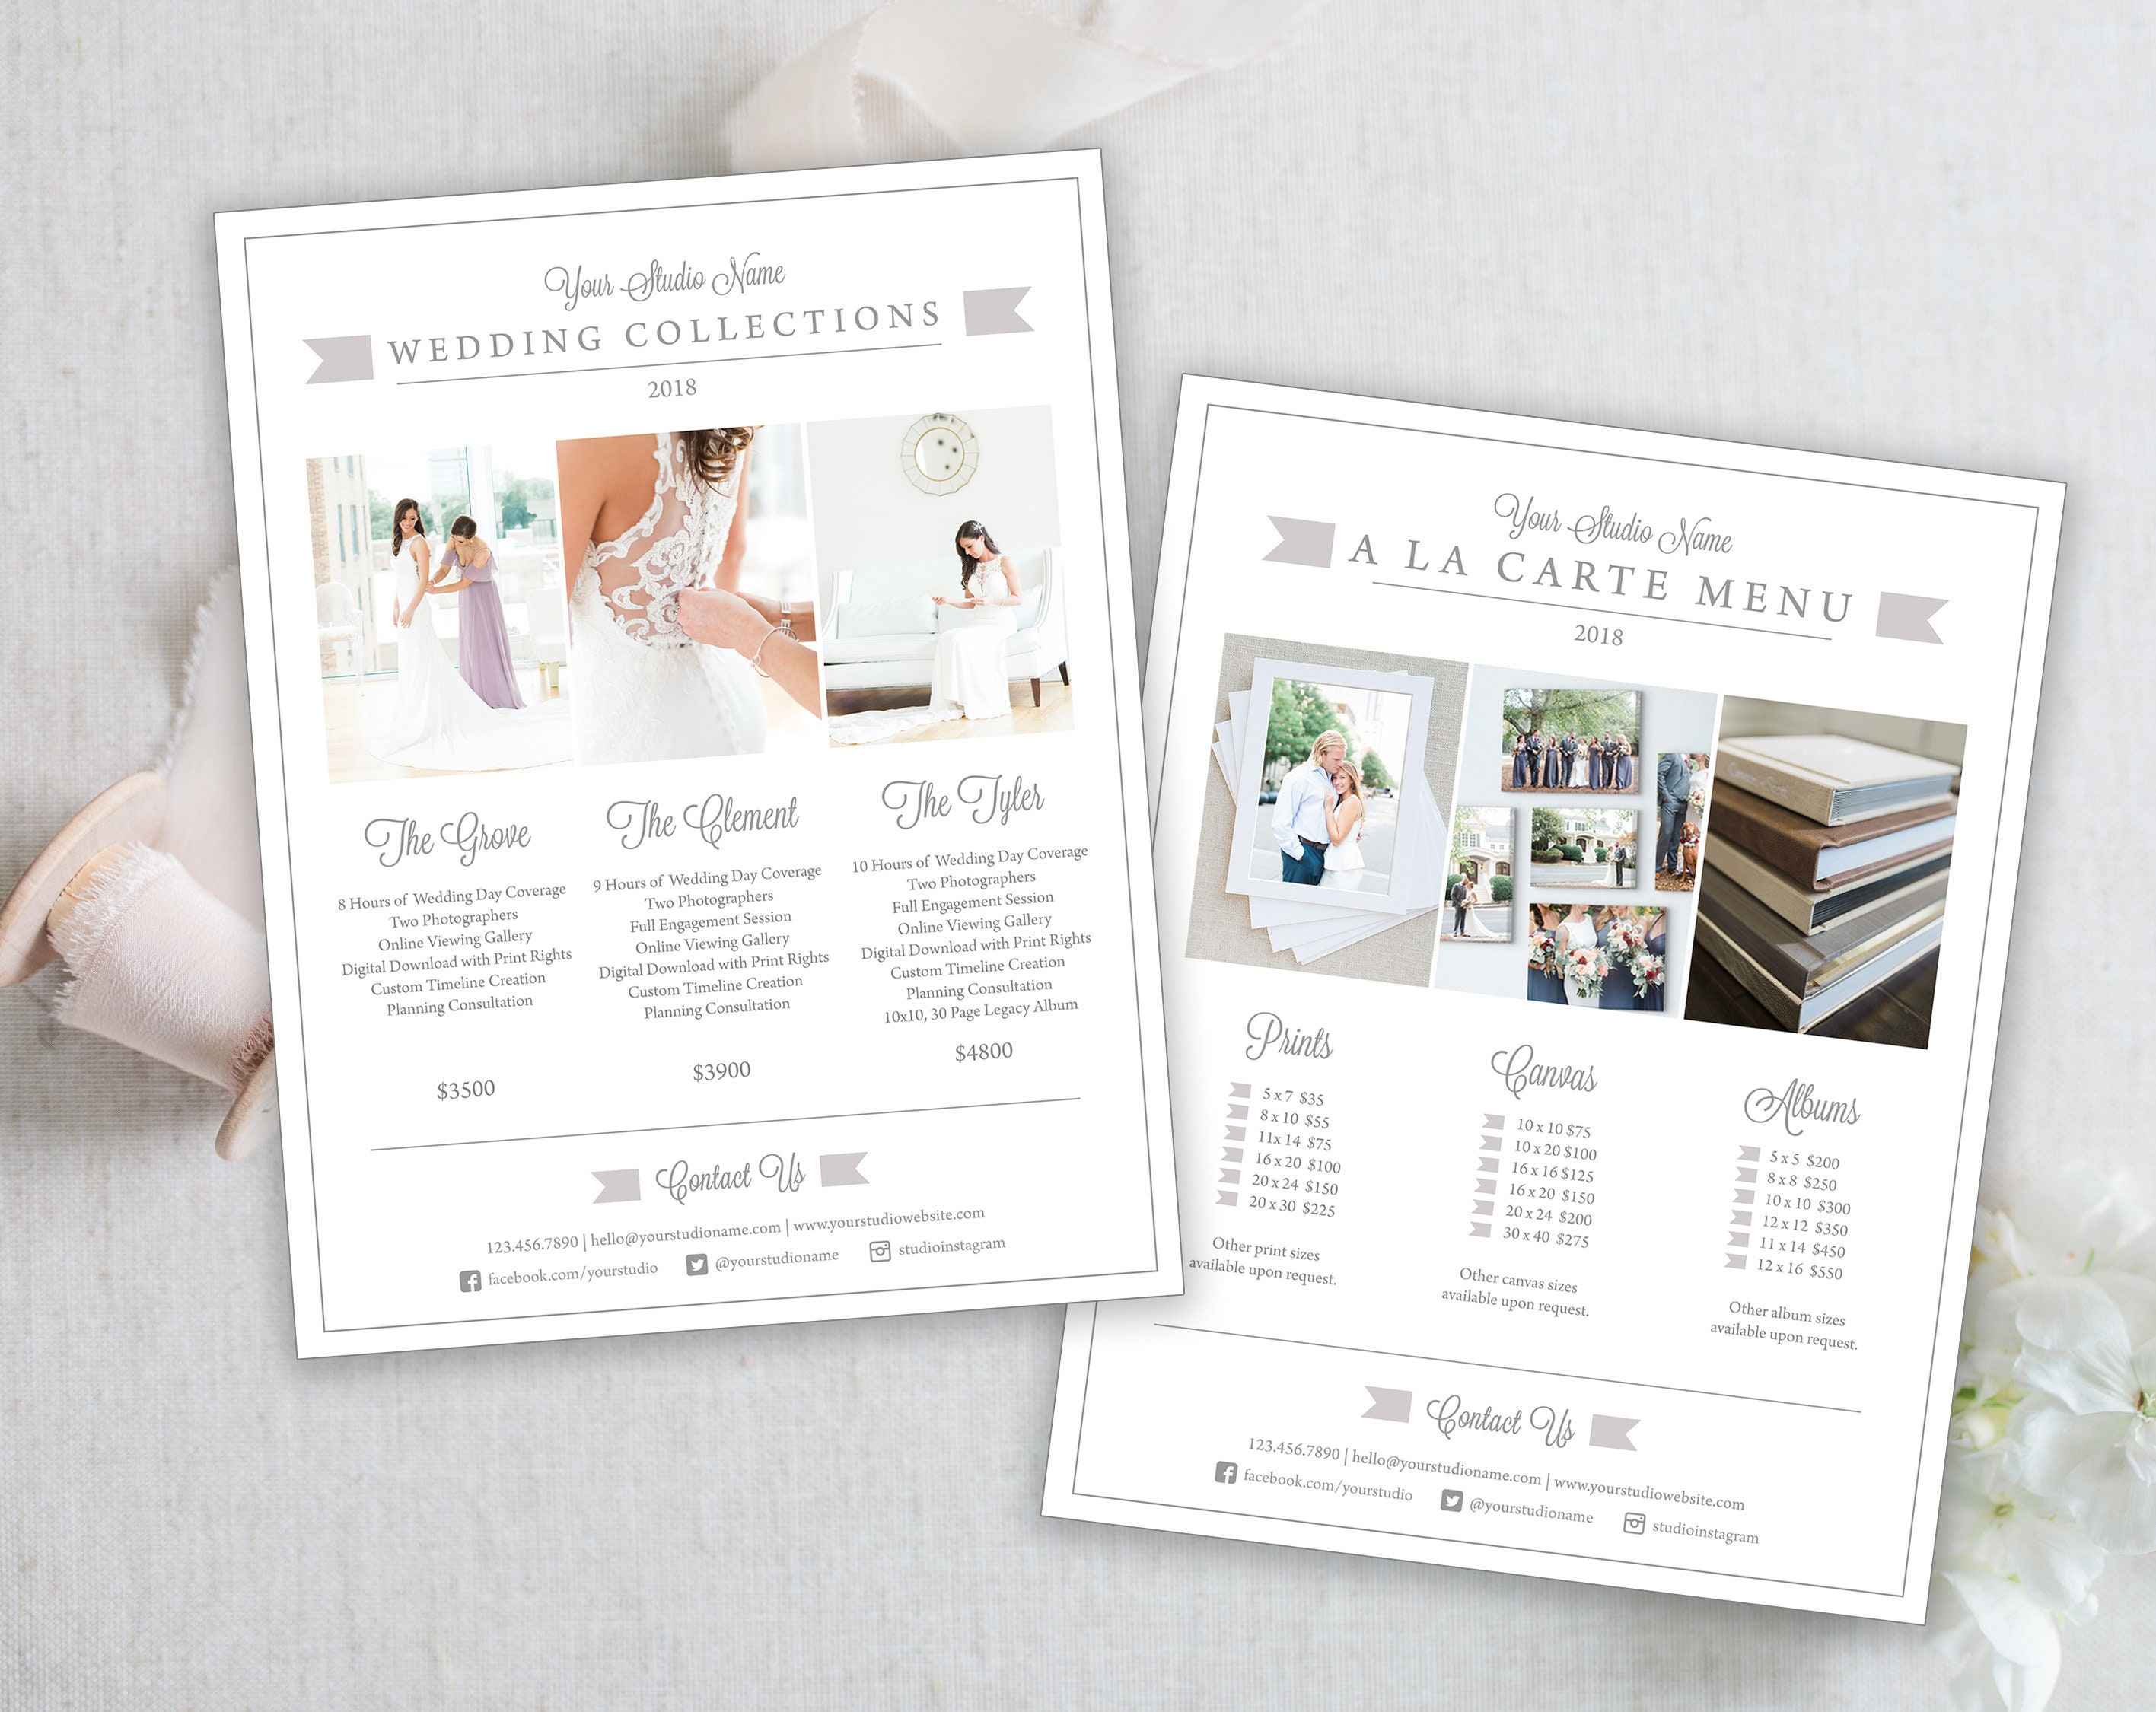 Wedding Photography Pricing Template Studio Guide Etsy Jpg 2833x2250 Album 5x7 Pictures 11x14